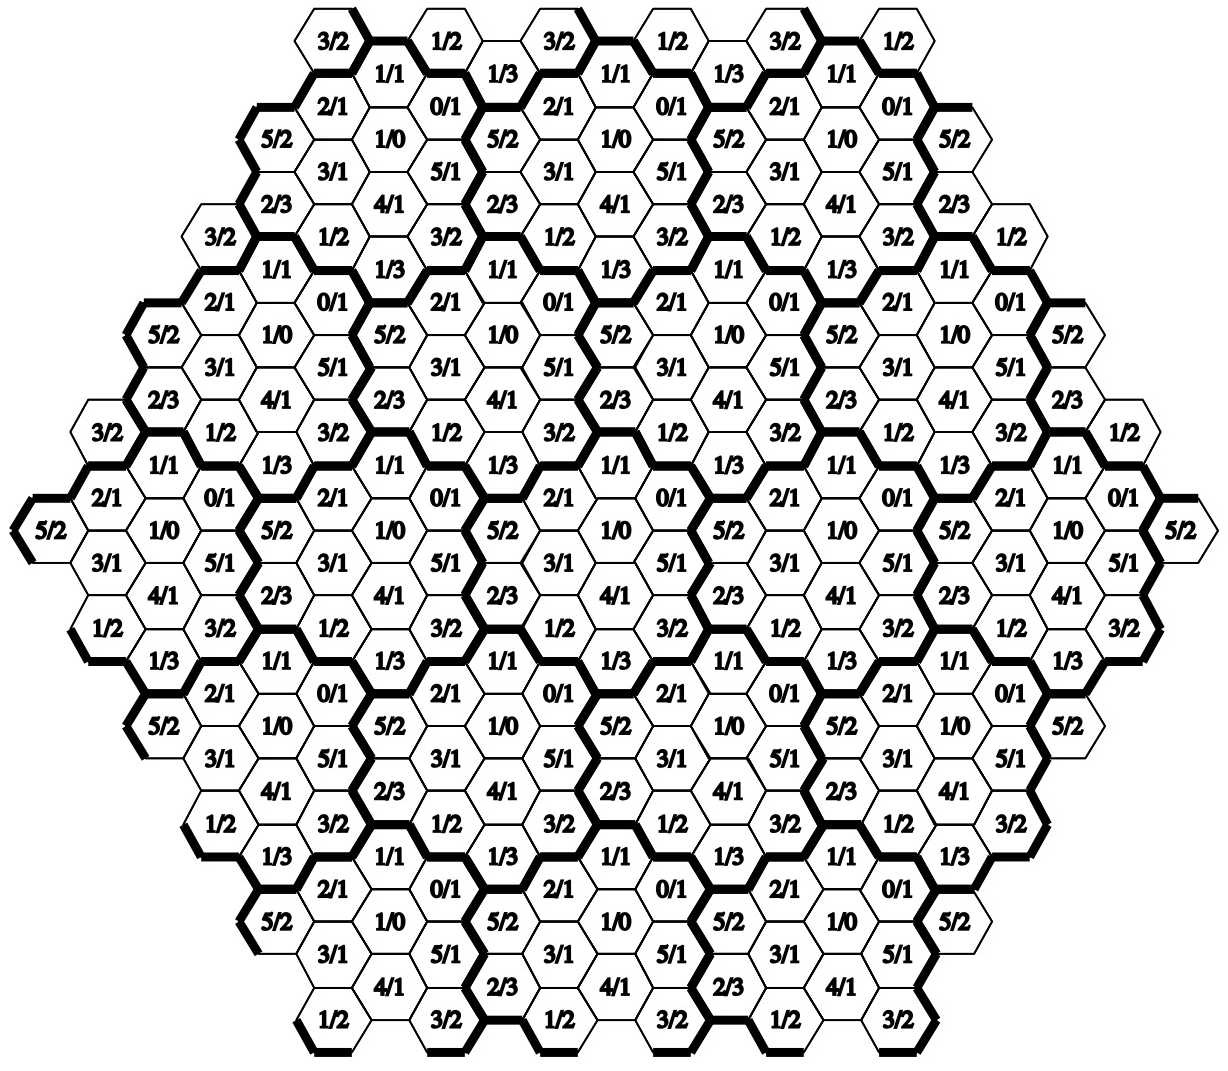 12 distinct hexagons: N = 6